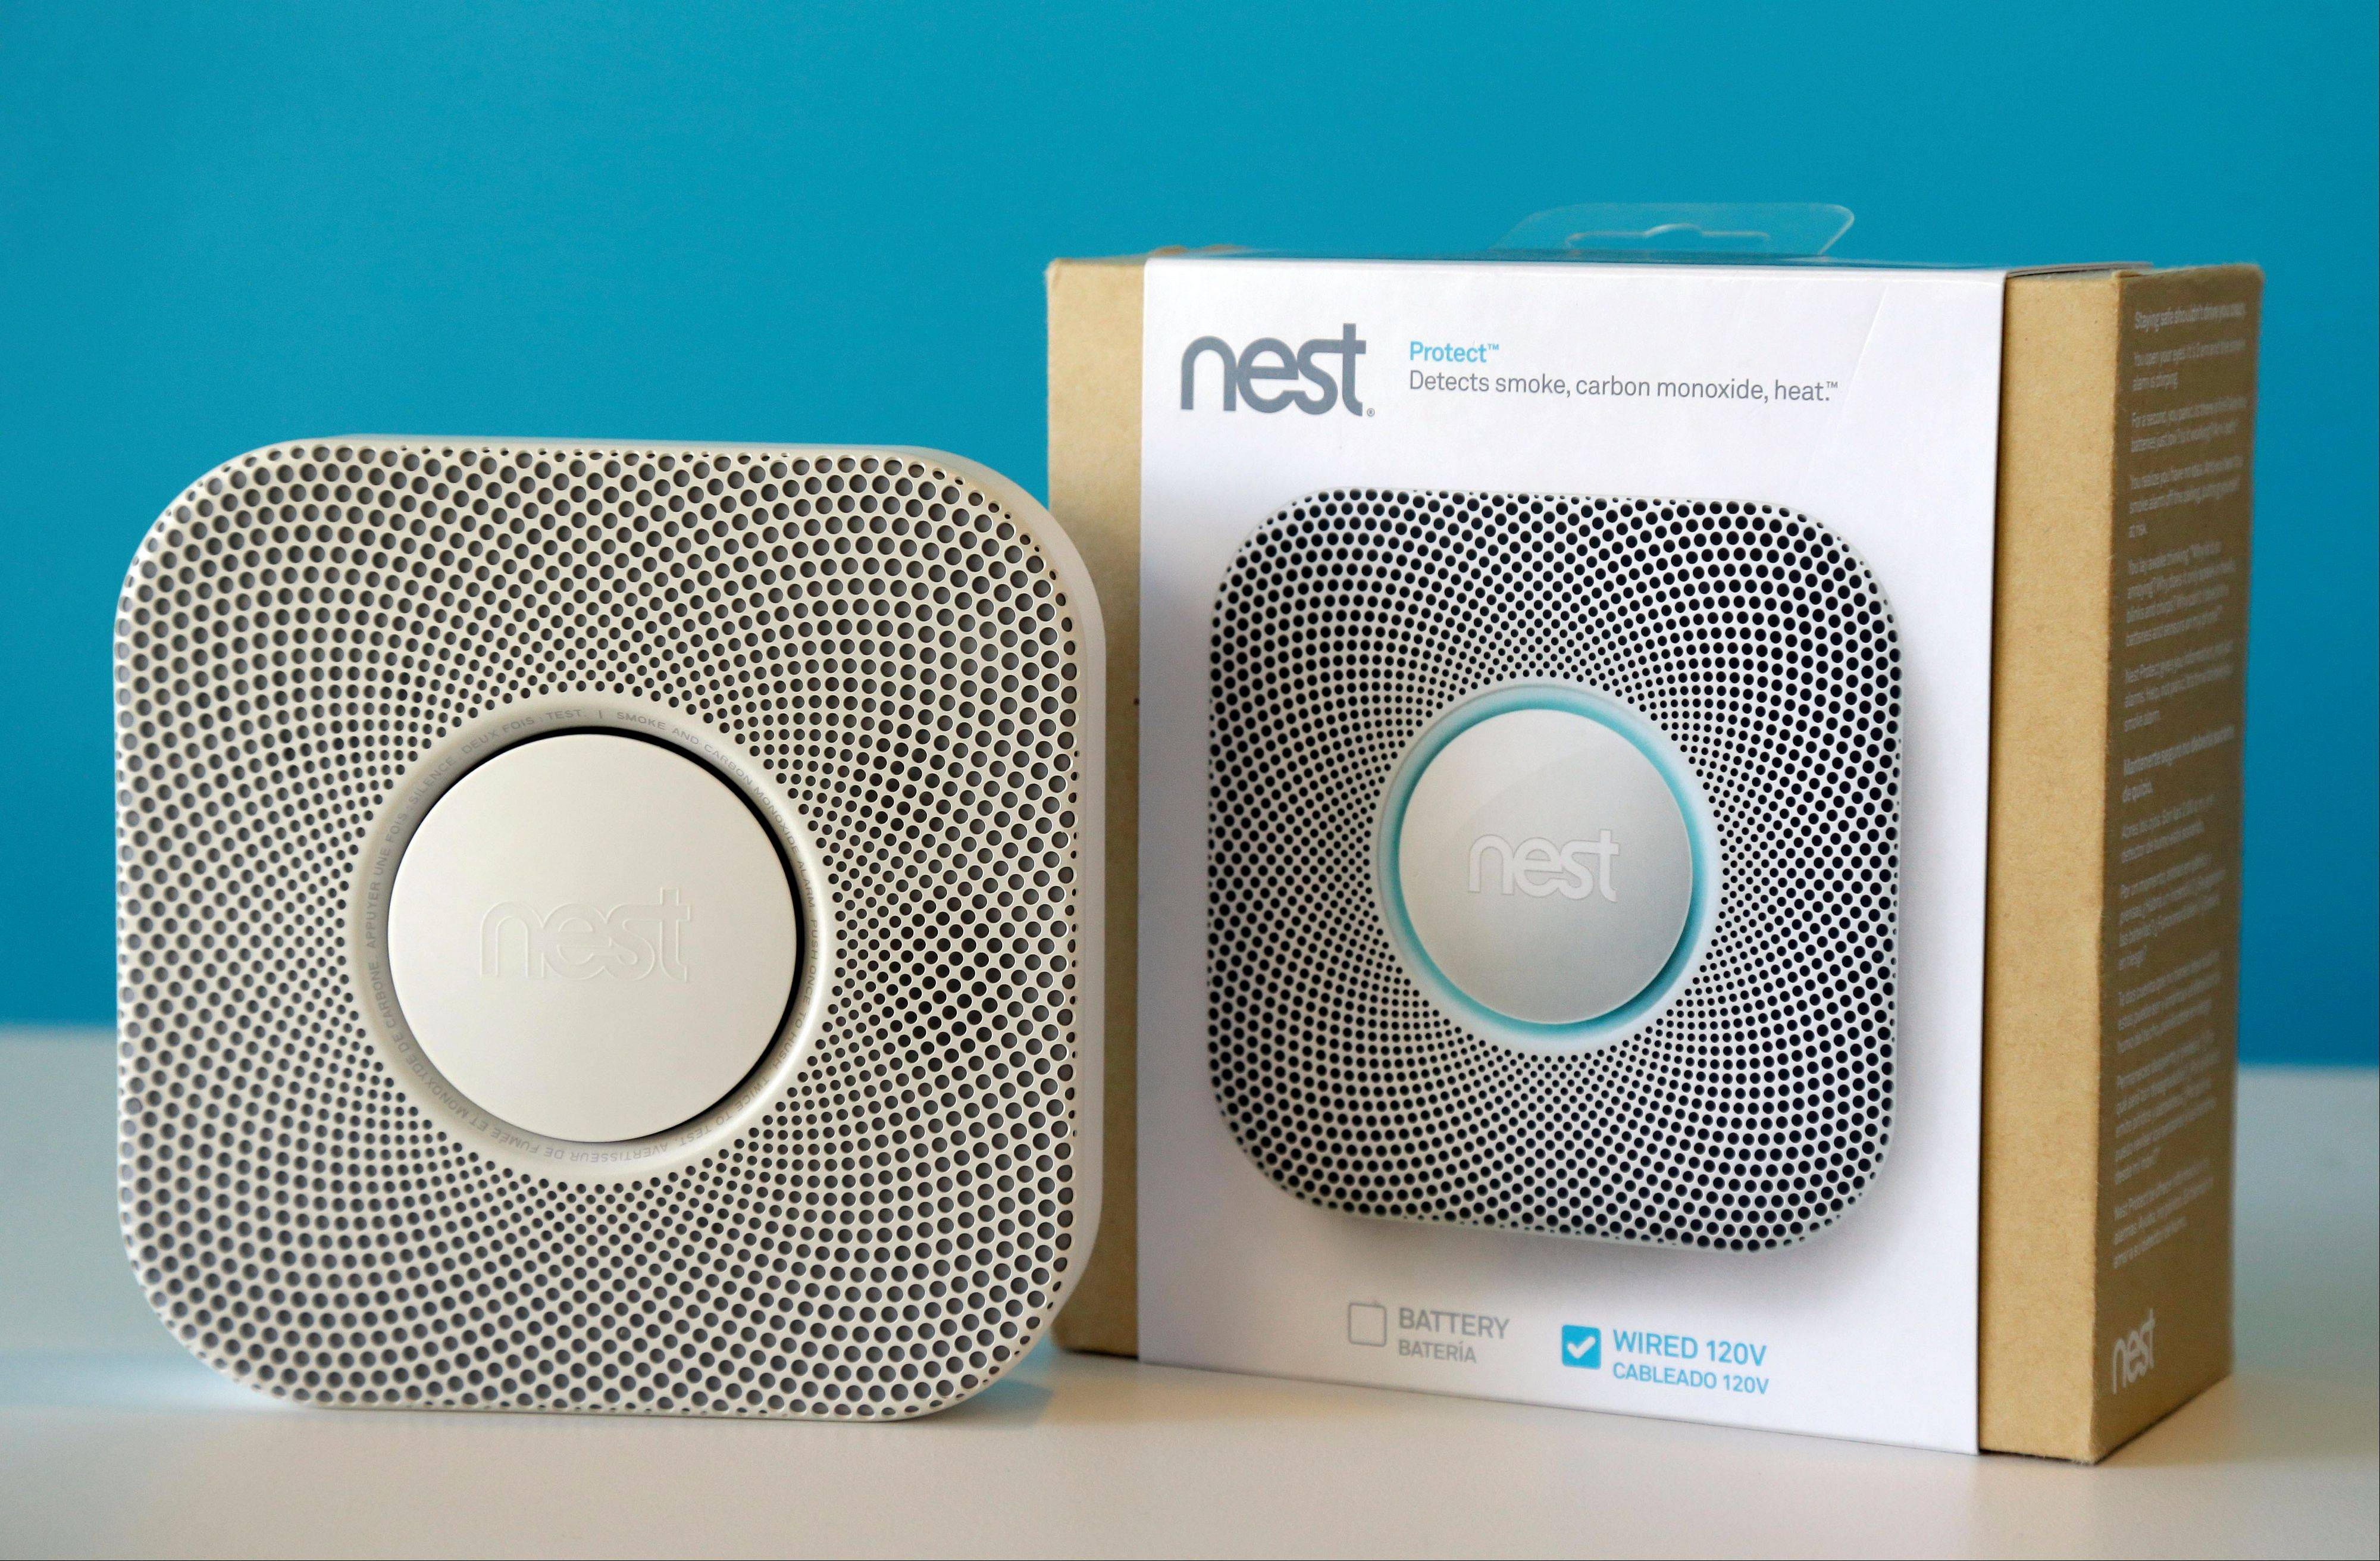 The Nest smoke and carbon monoxide alarm at the company's offices, in Palo Alto, Calif.